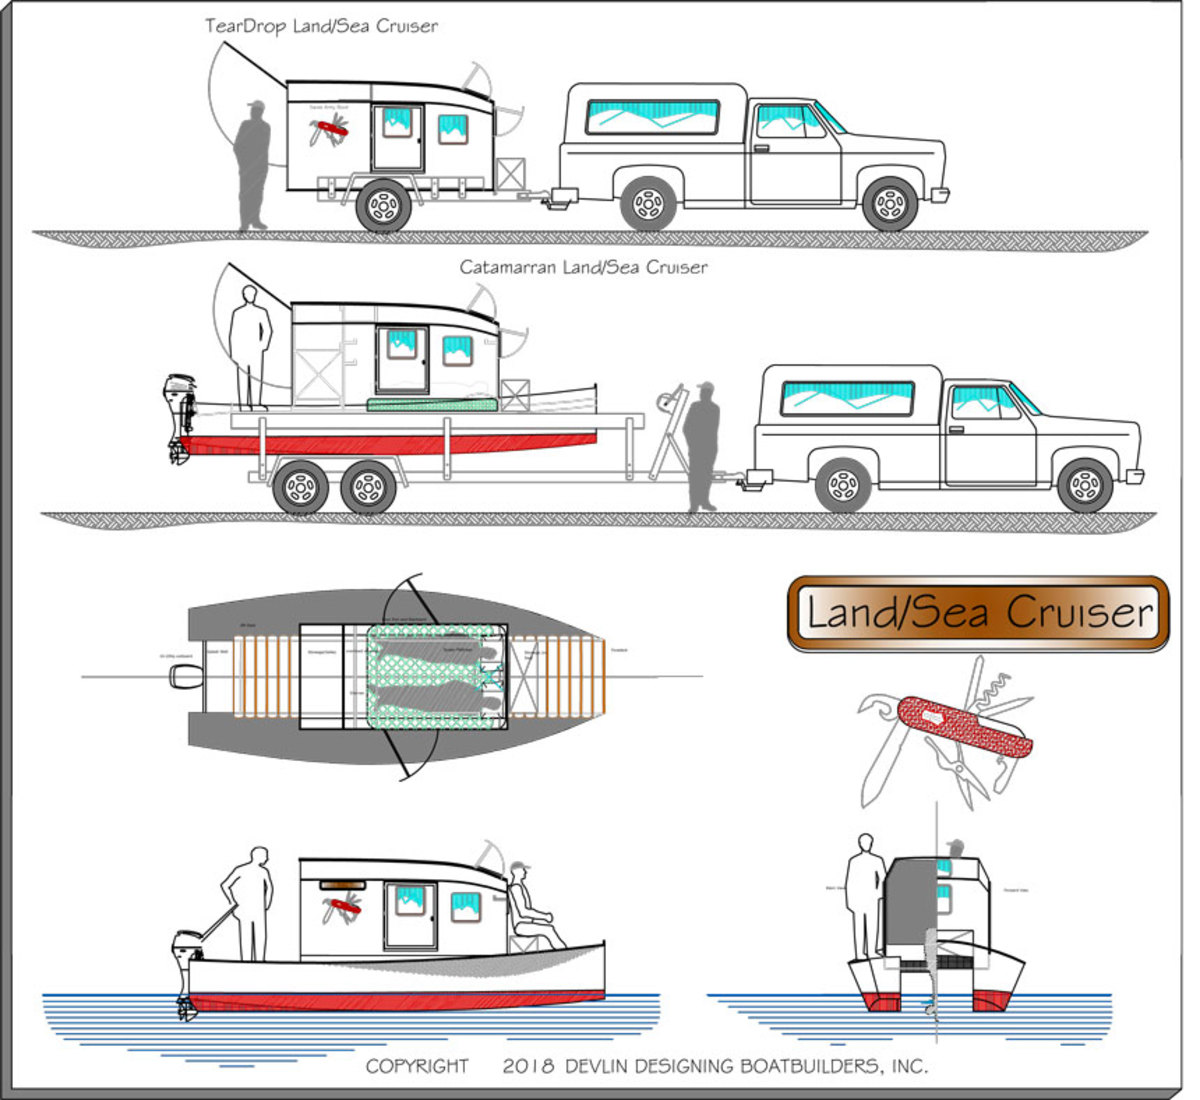 Imagine a teardrop-type trailer that can be placed on a catamaran hull.